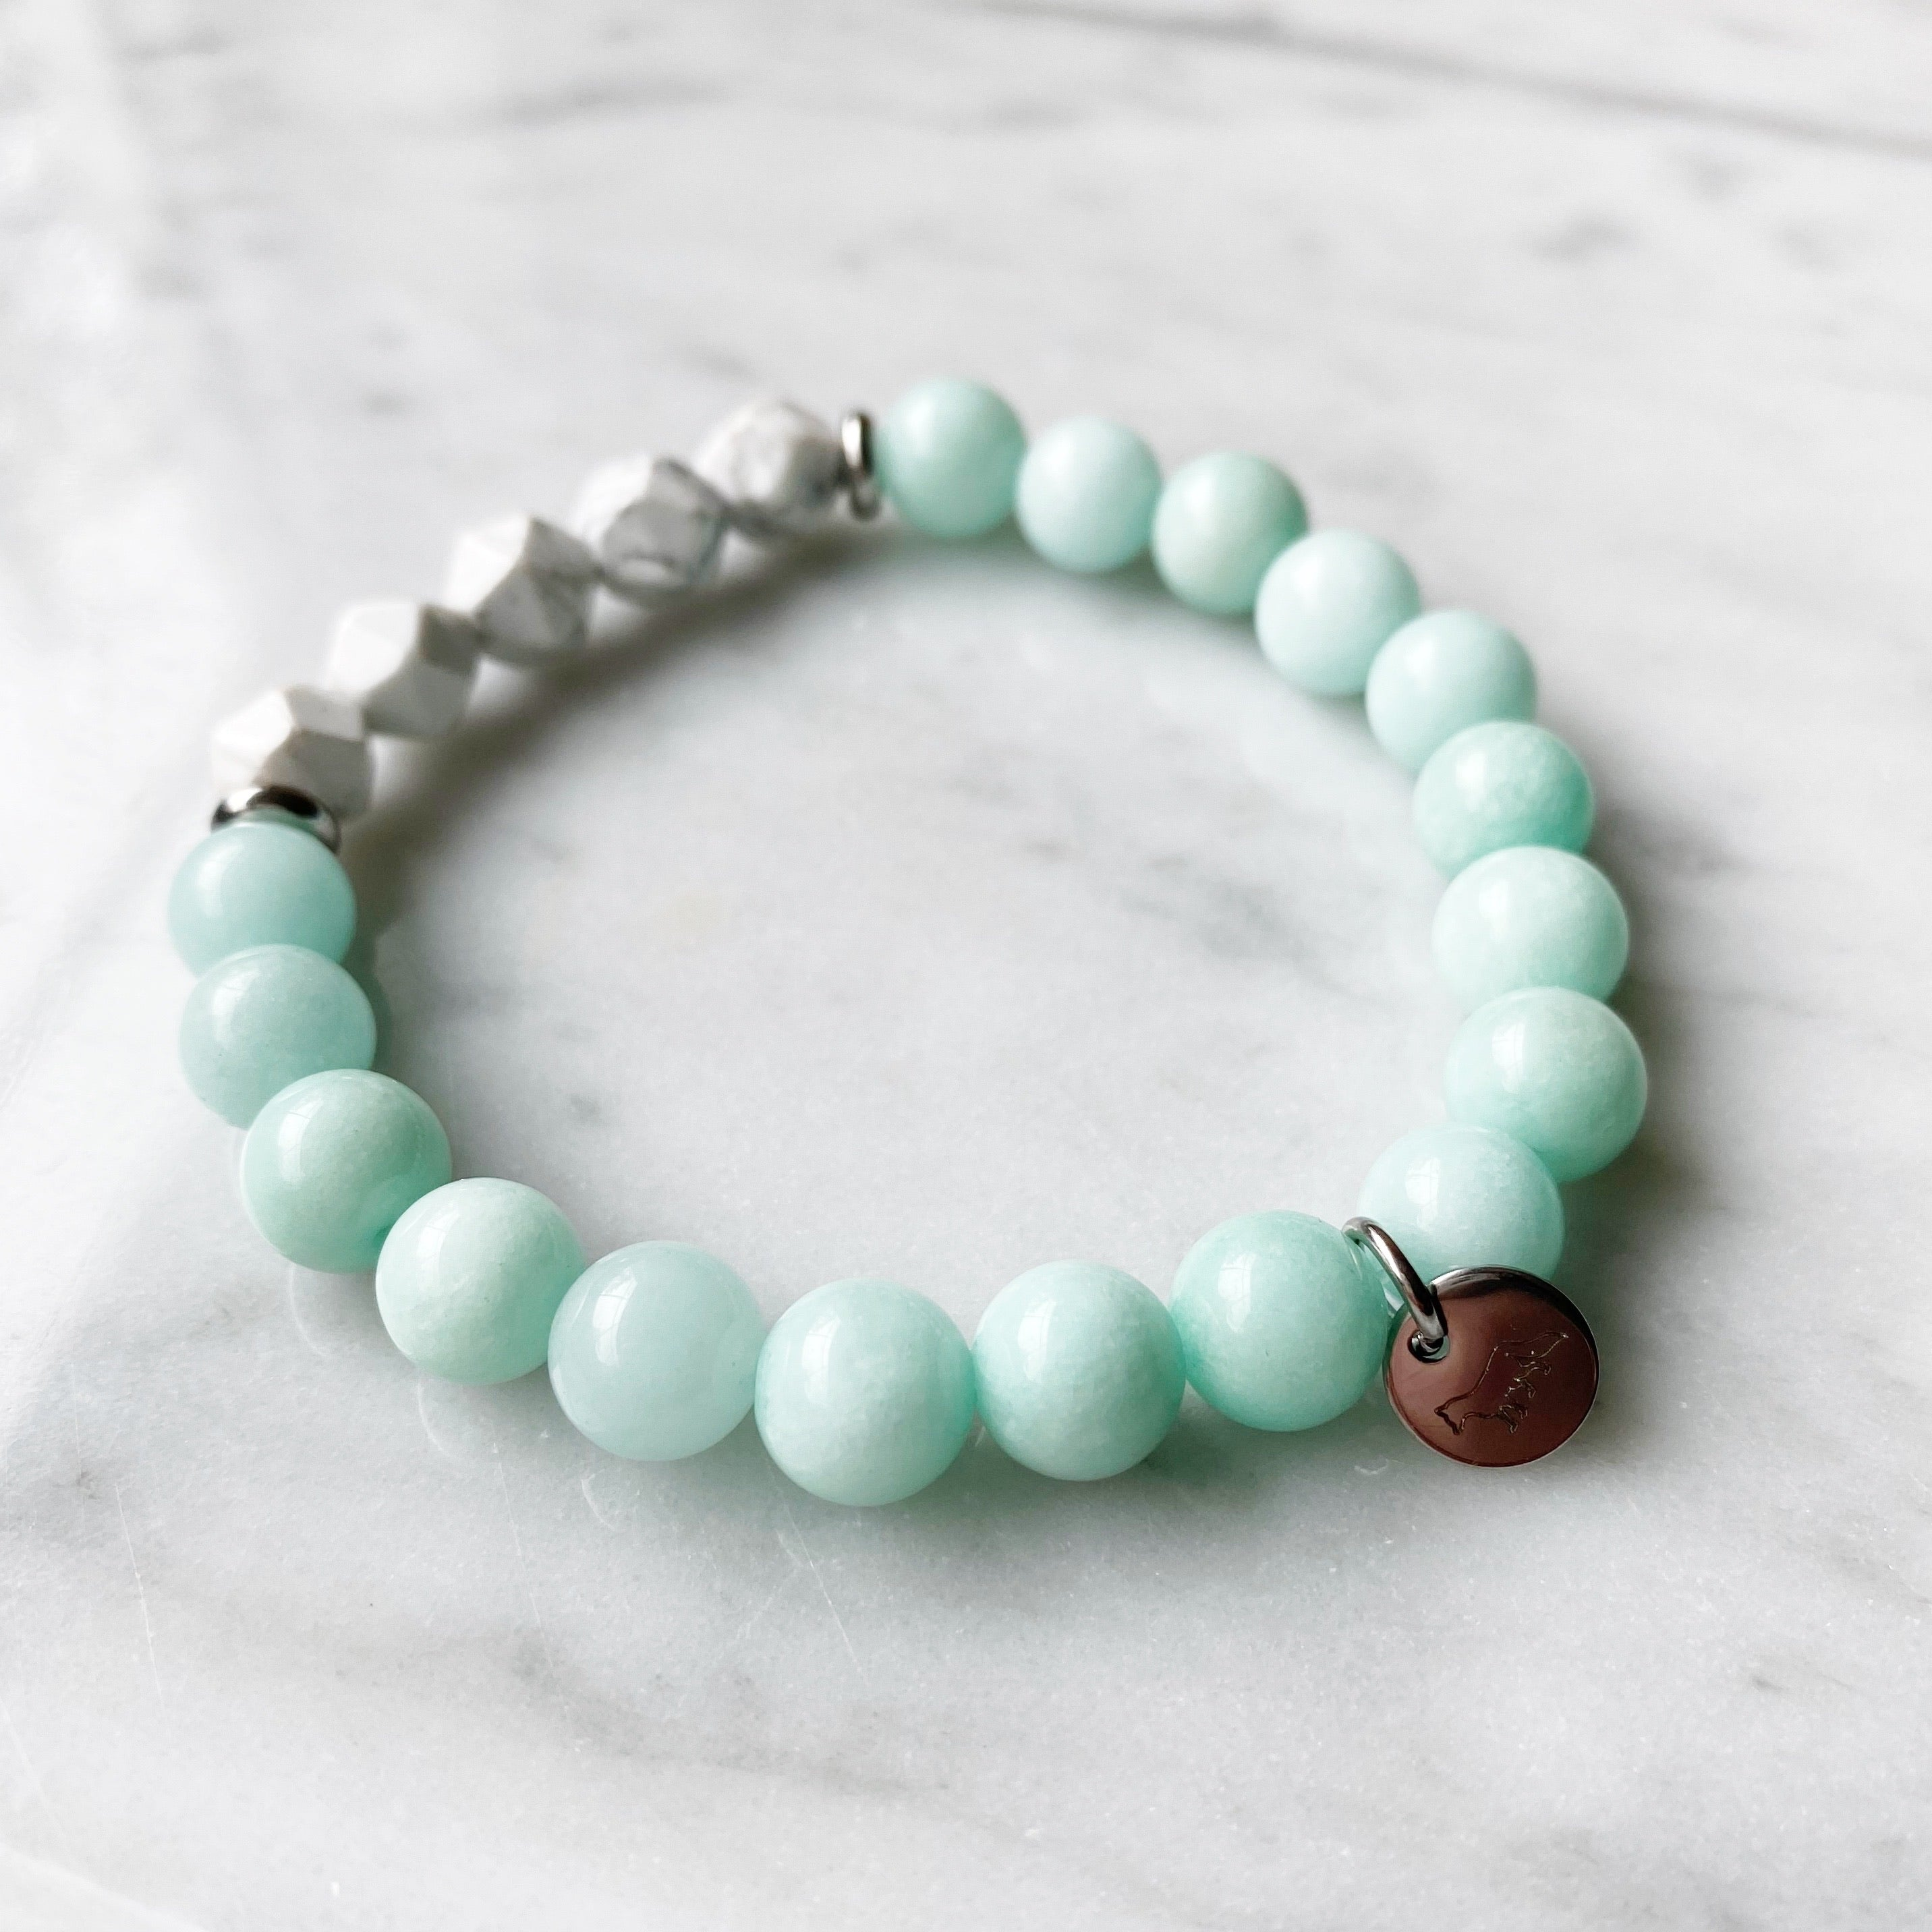 Amazonite and Howlite Bracelet - 8mm